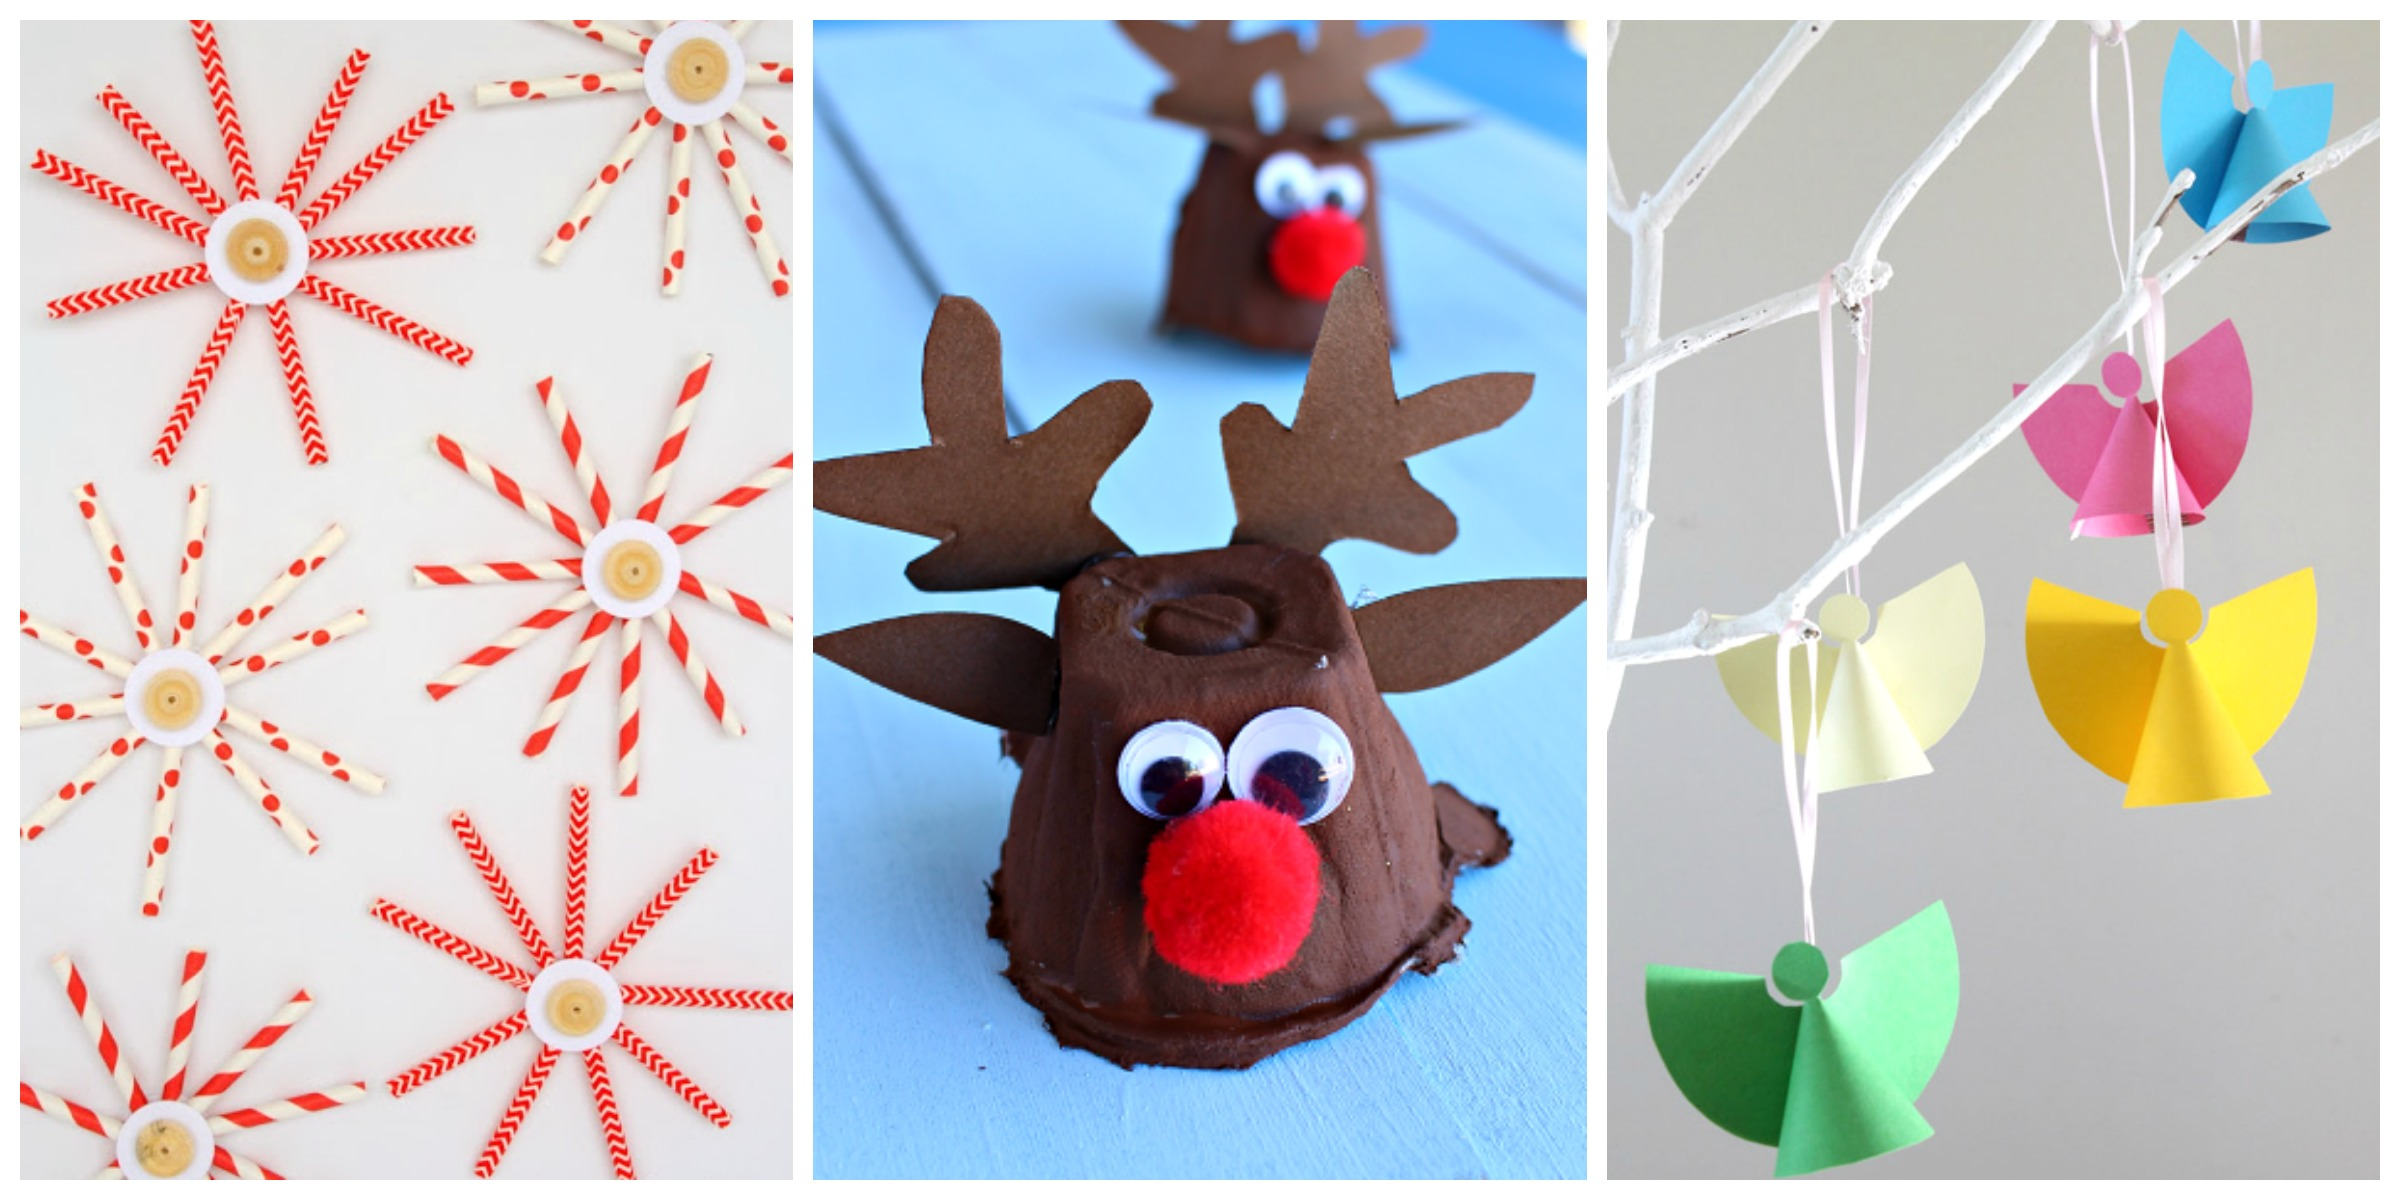 26 Christmas Activities For Kids DIY Holiday Crafts And